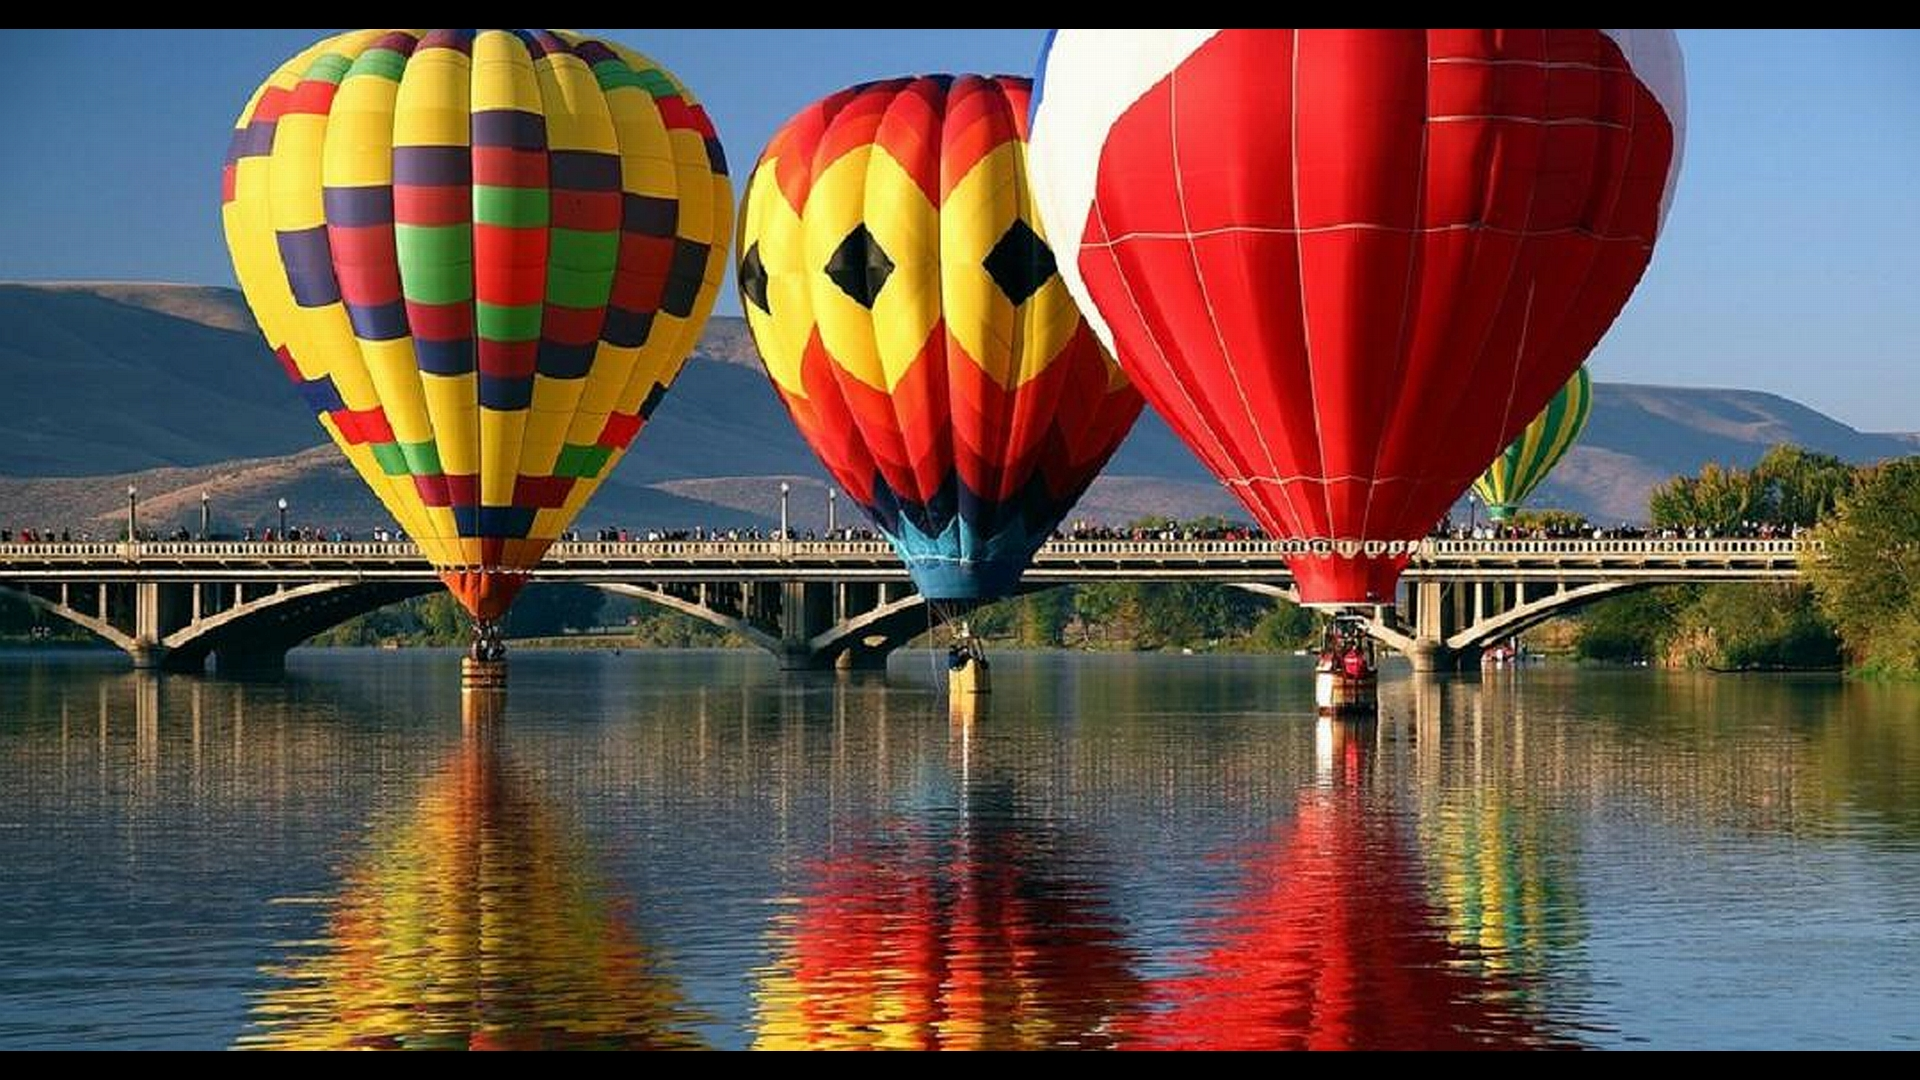 Free Wallpaper Fall Colours Hot Air Balloon Full Hd Wallpaper And Background Image